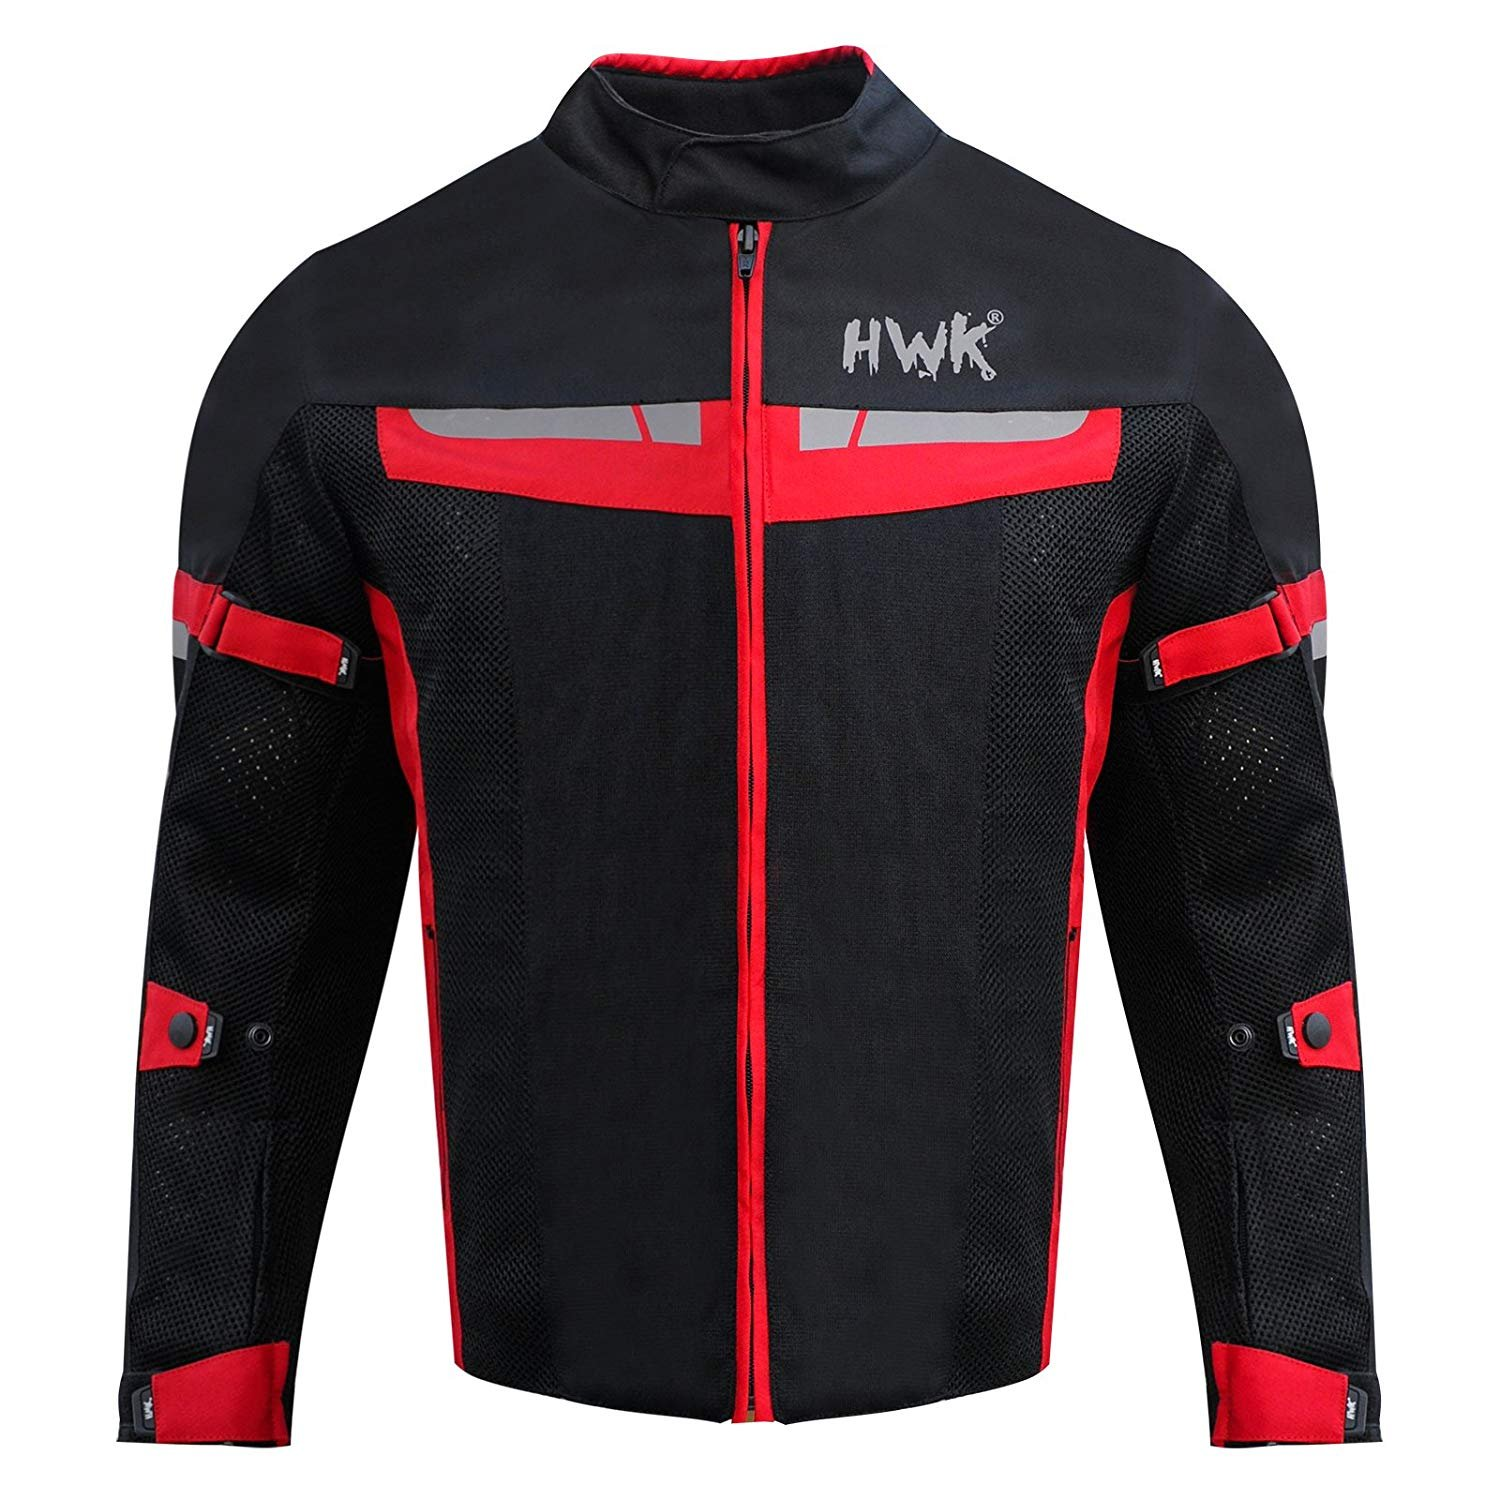 HWK Mesh Motorcycle Jacket Riding Air Motorbike Jacket Biker CE Armored Breathable (XXXX-Large, Red)